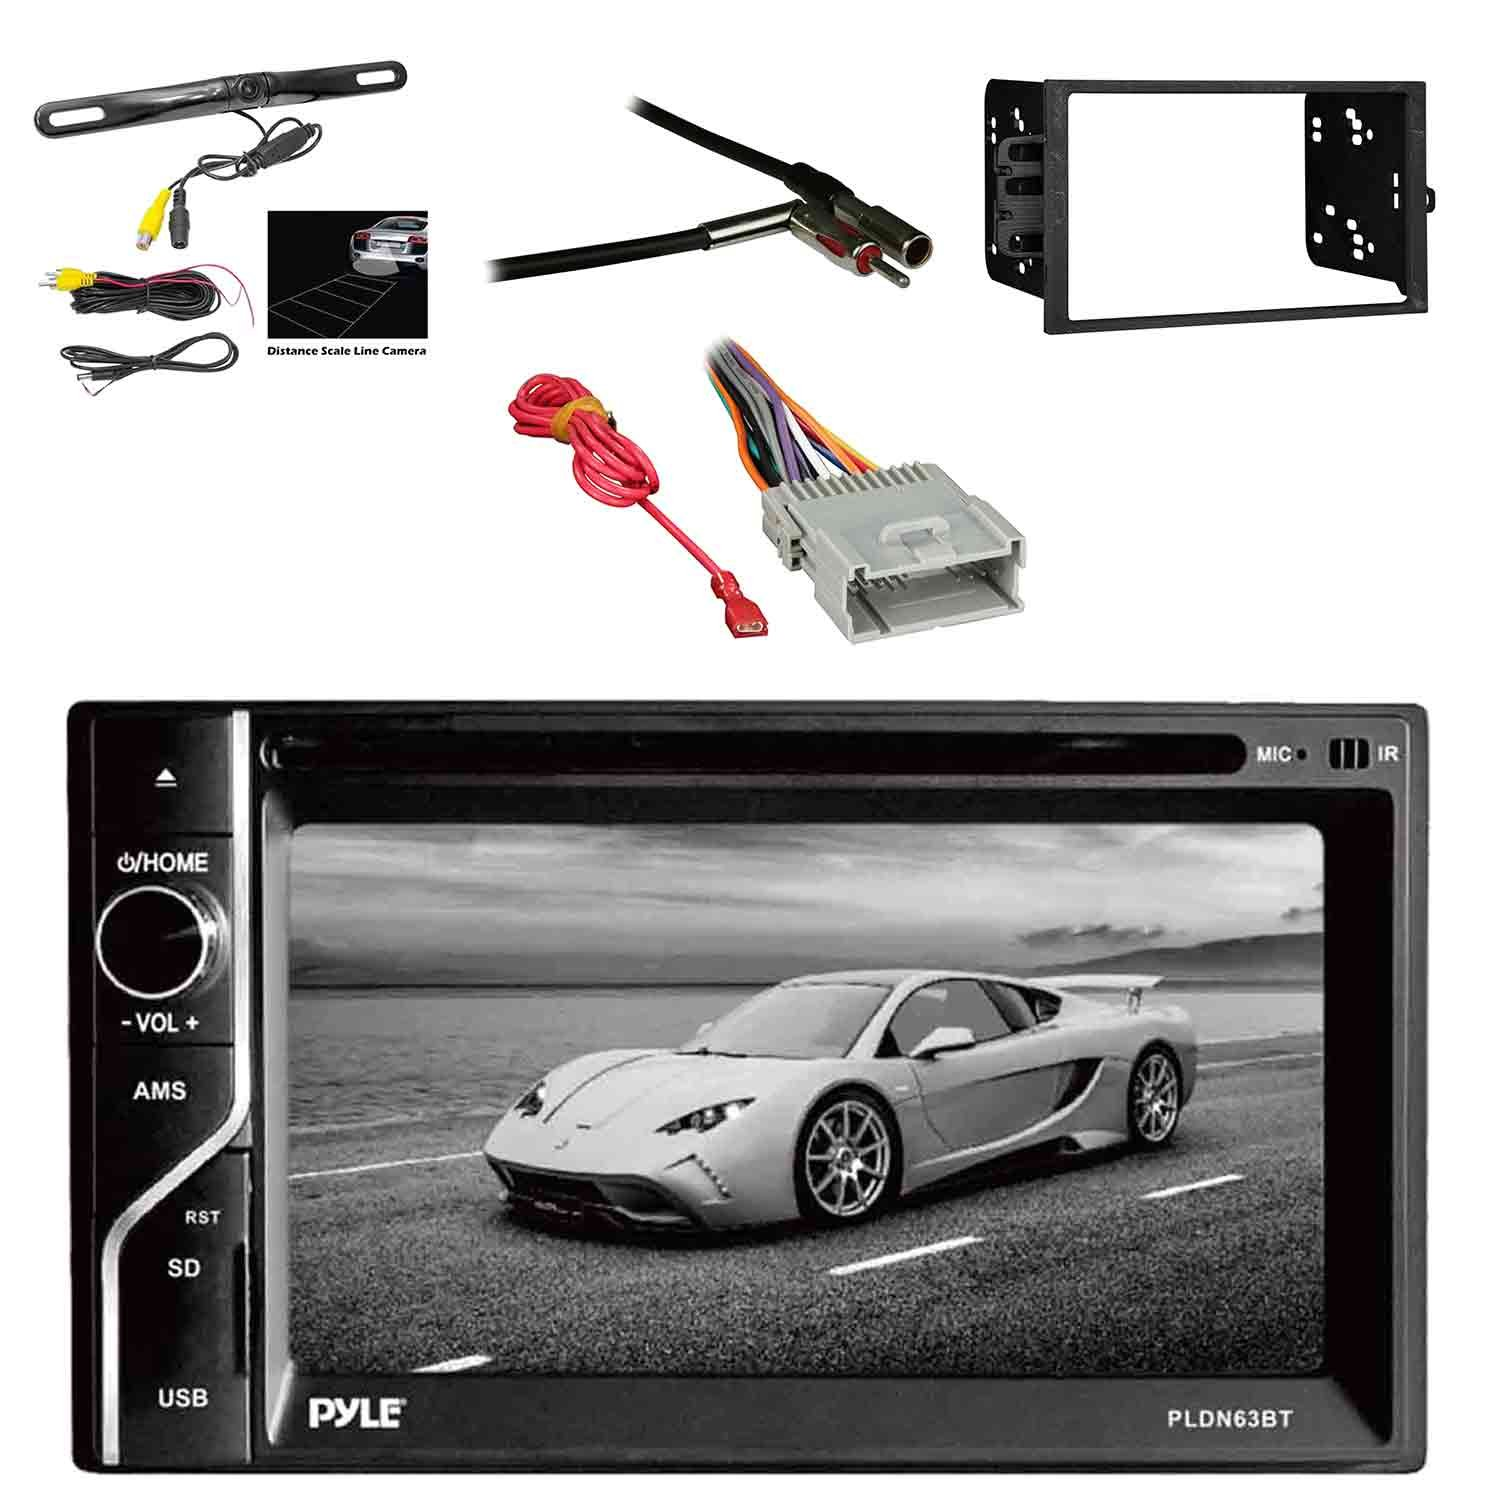 Amazon.com: Pyle PLDN63BT 6.5'' 2-DIN in-Dash Touch Screen BT ... on rear seat, rear drive shaft, rear lights, rear body harness,